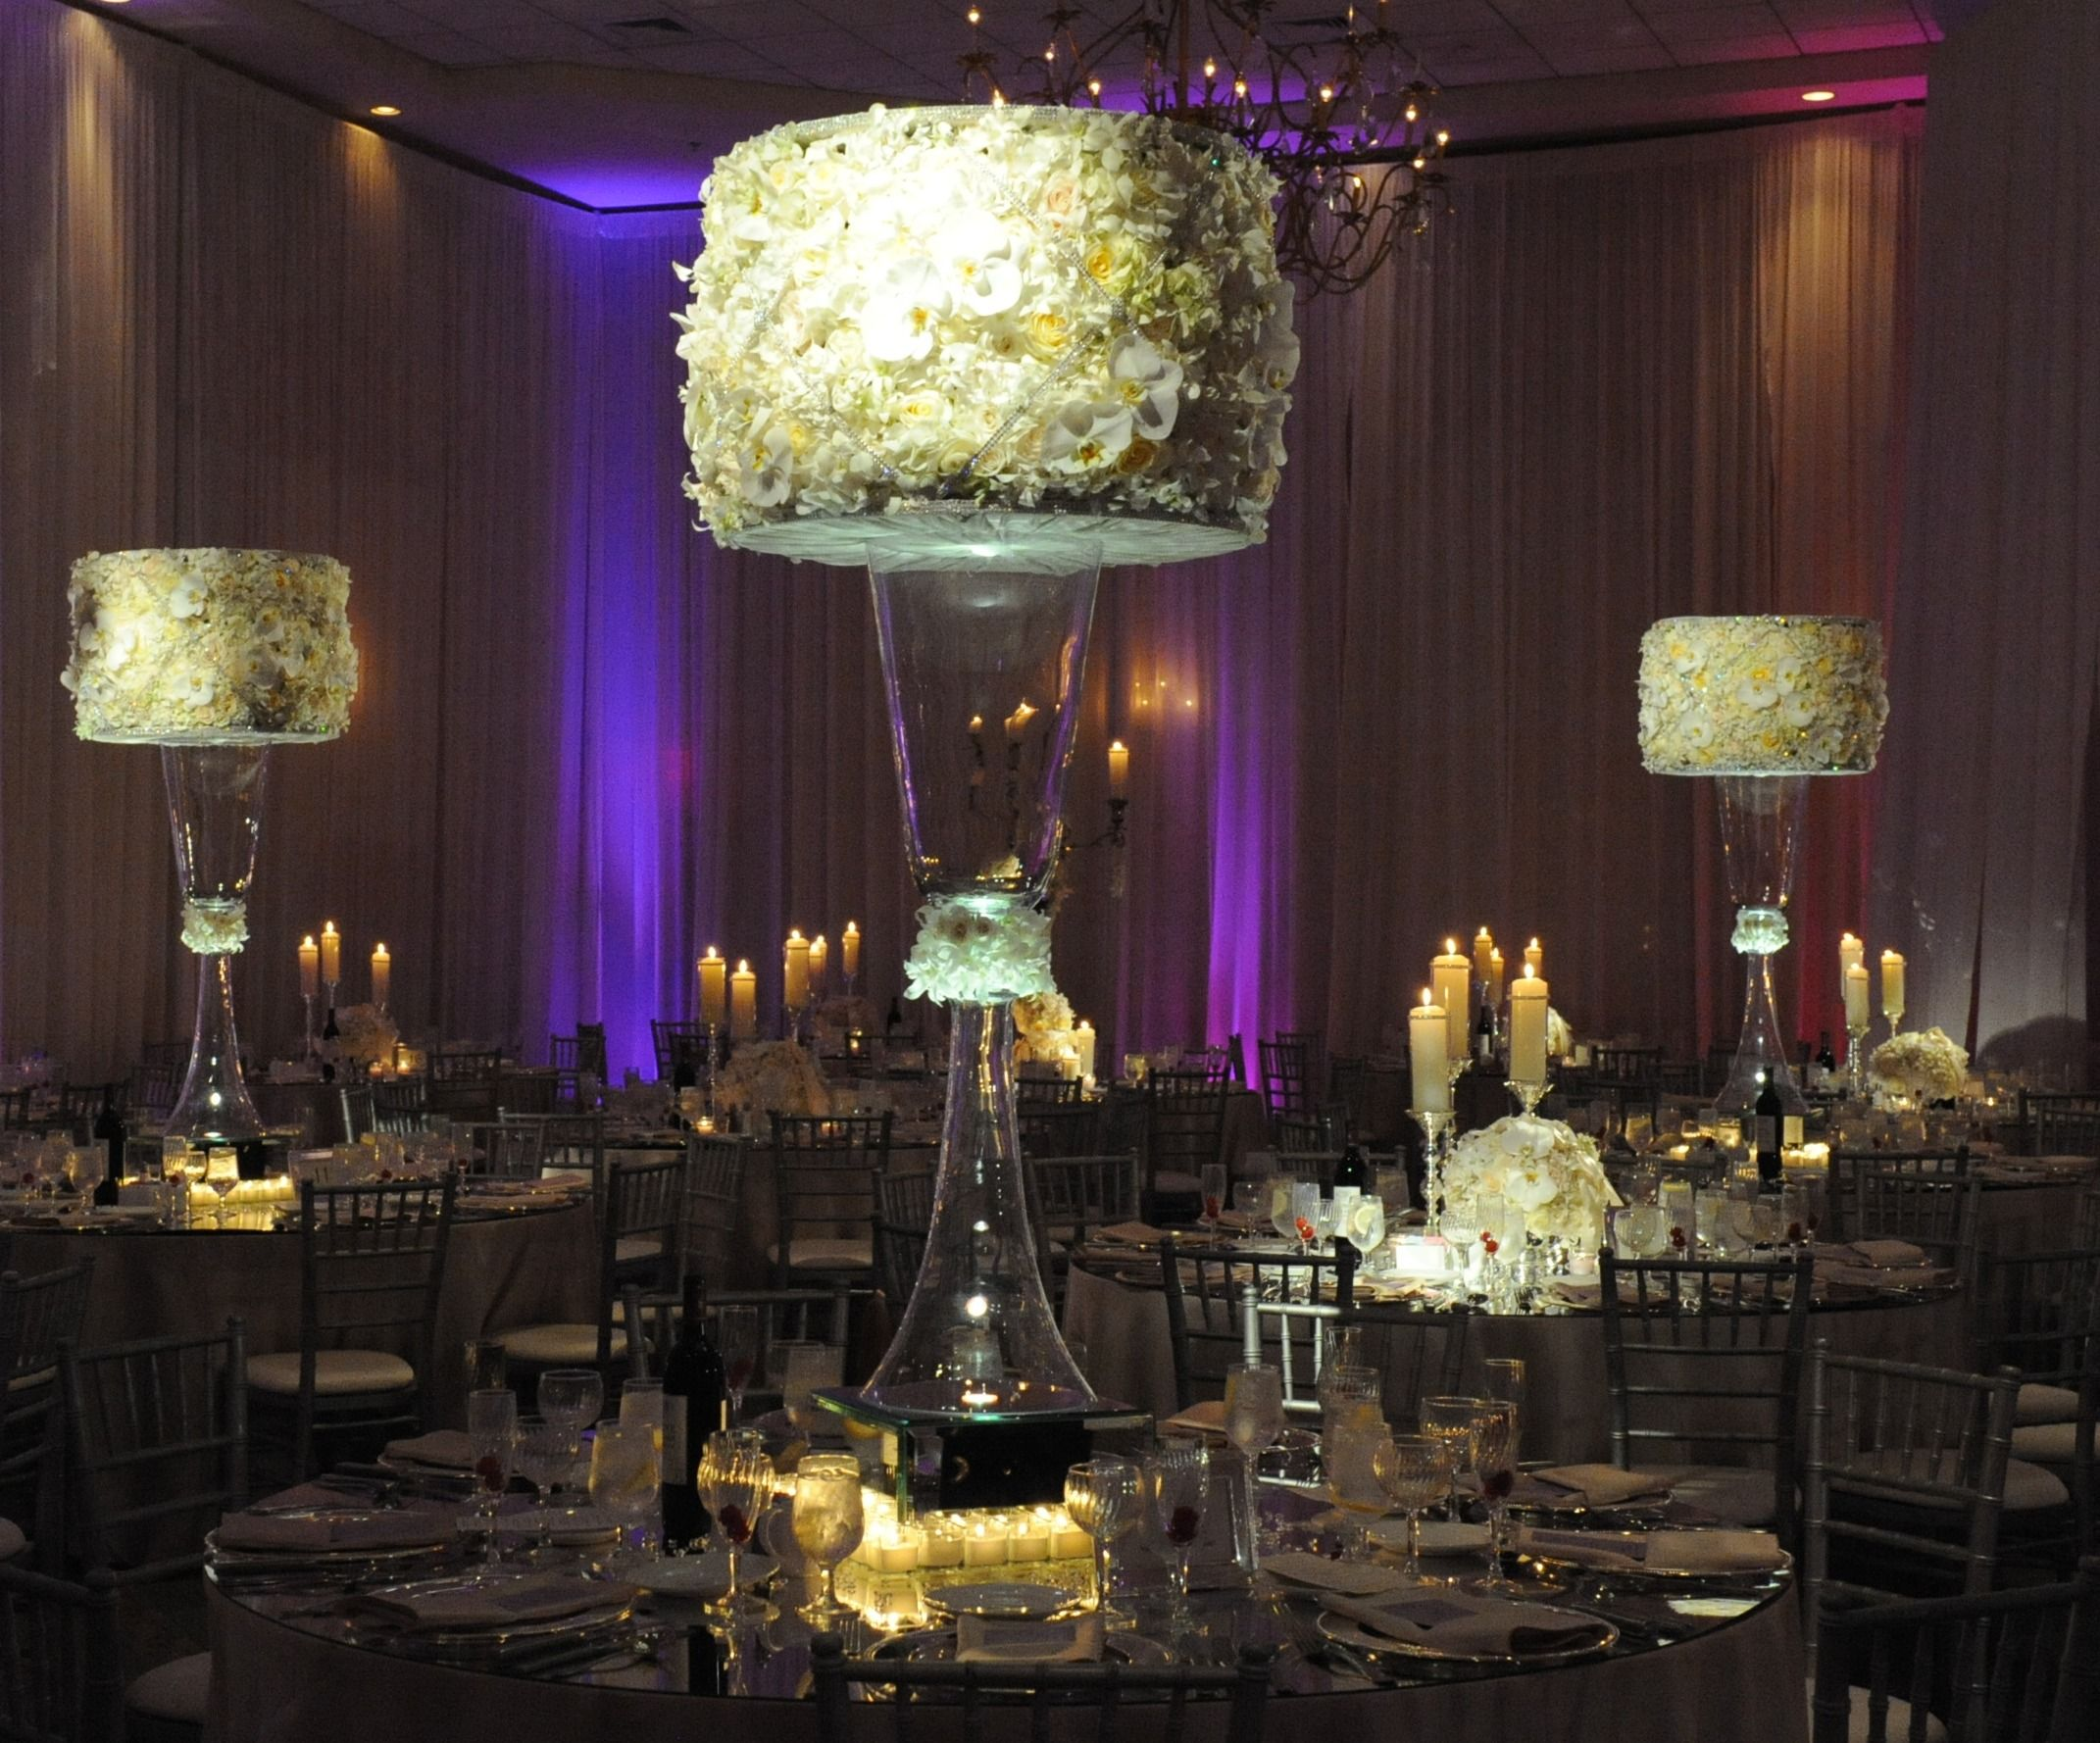 Exceptionnel Large White Table Centerpiece With Glowing Mirror Box.